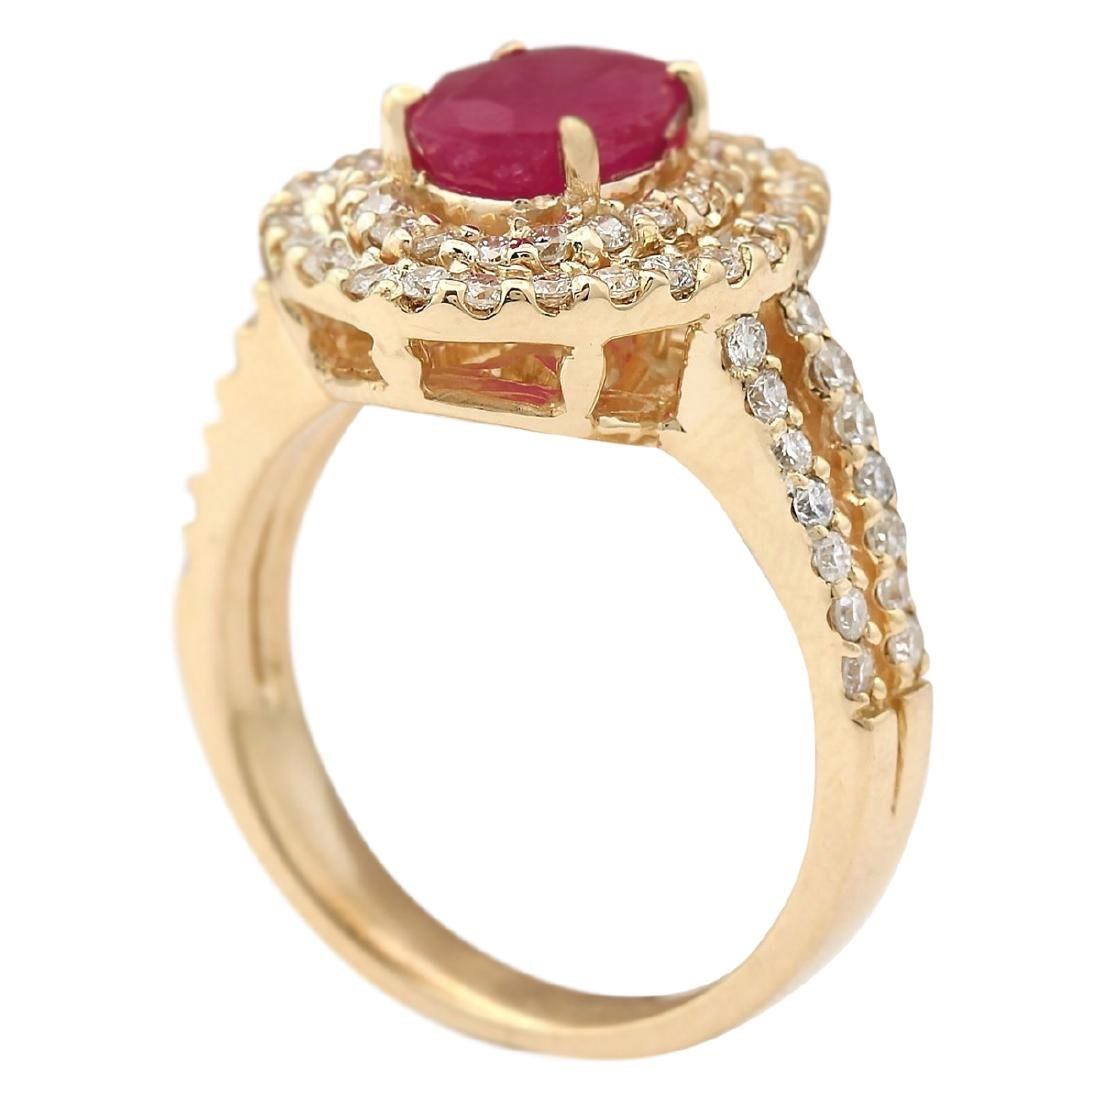 3.08 CTW Natural Ruby Ring In 18K Yellow Gold - 3